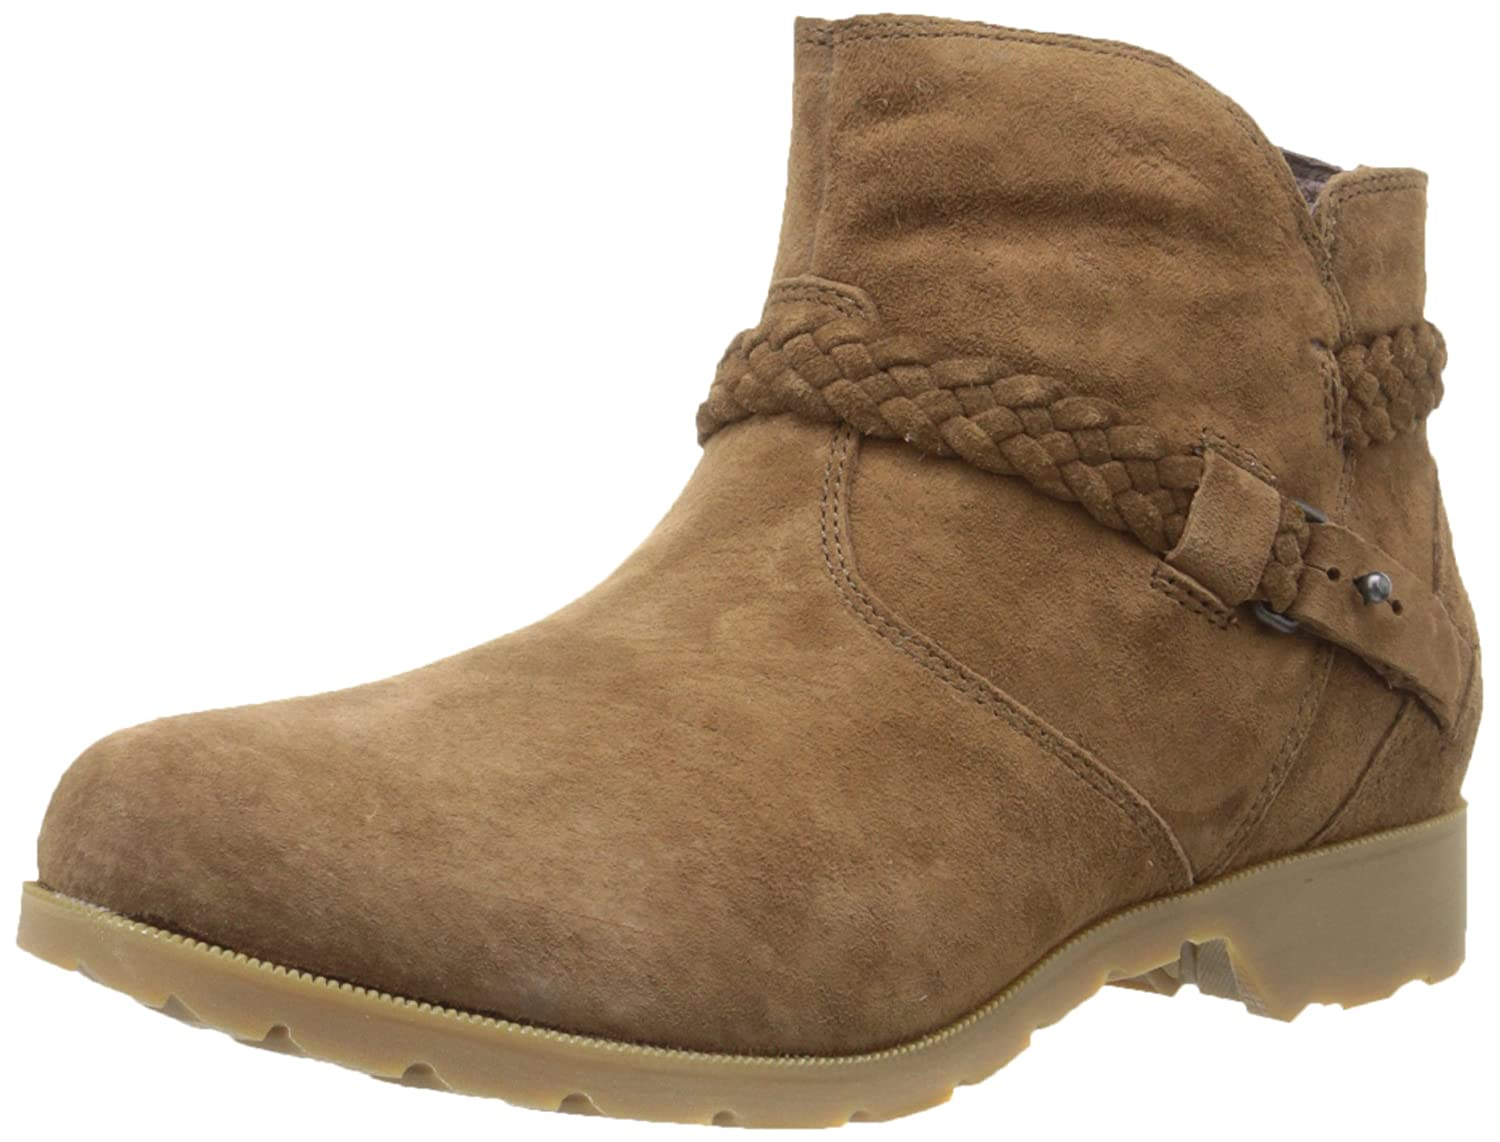 Teva Women's Delavina Suede Ankle Boot B00PS251MC 6 B(M) US|Bison